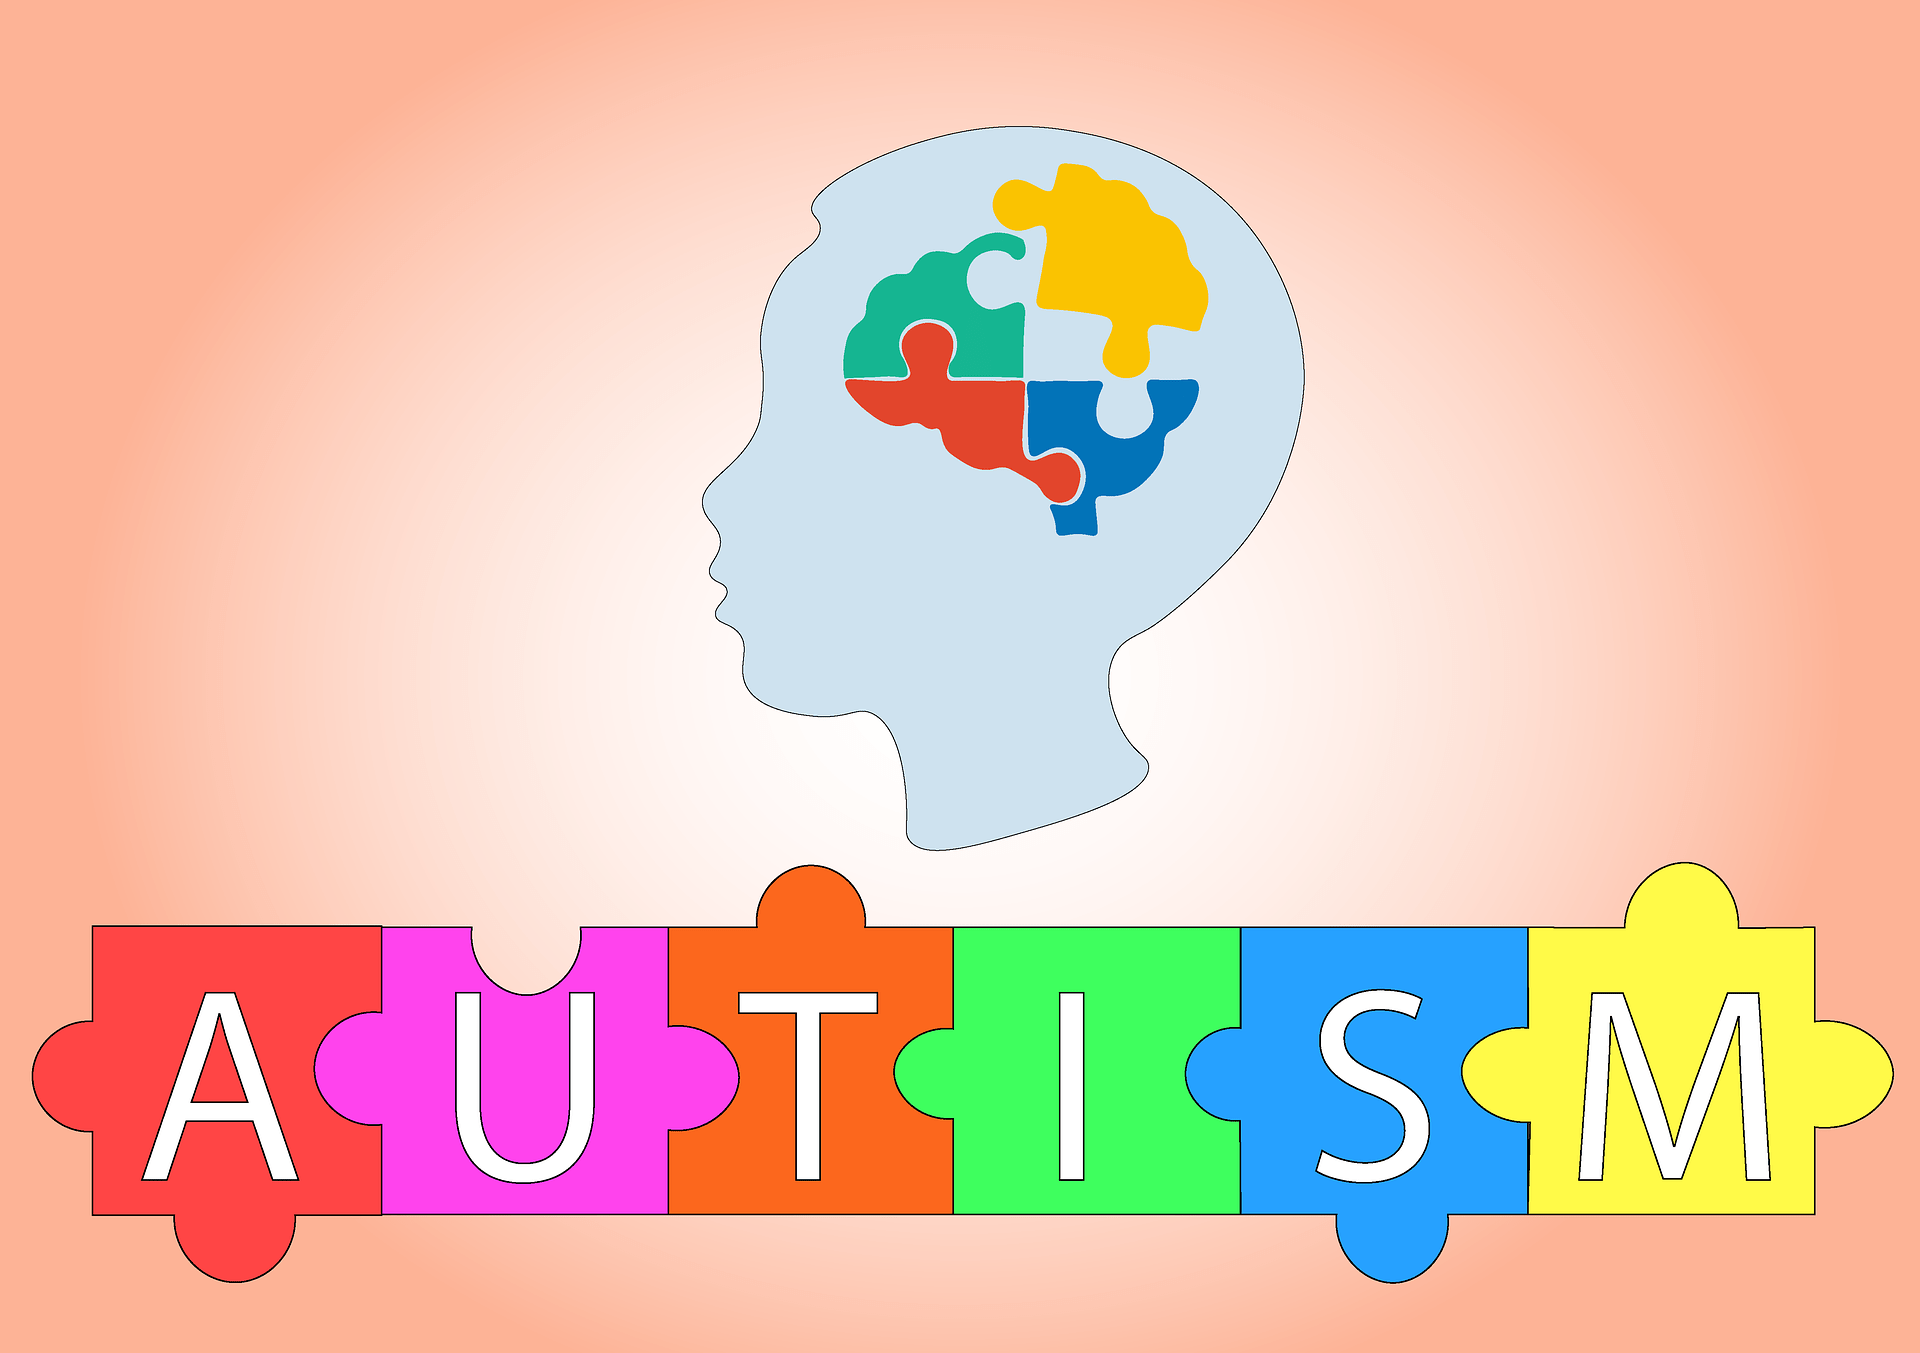 Cure per l'autismo, verso un possibile farmaco